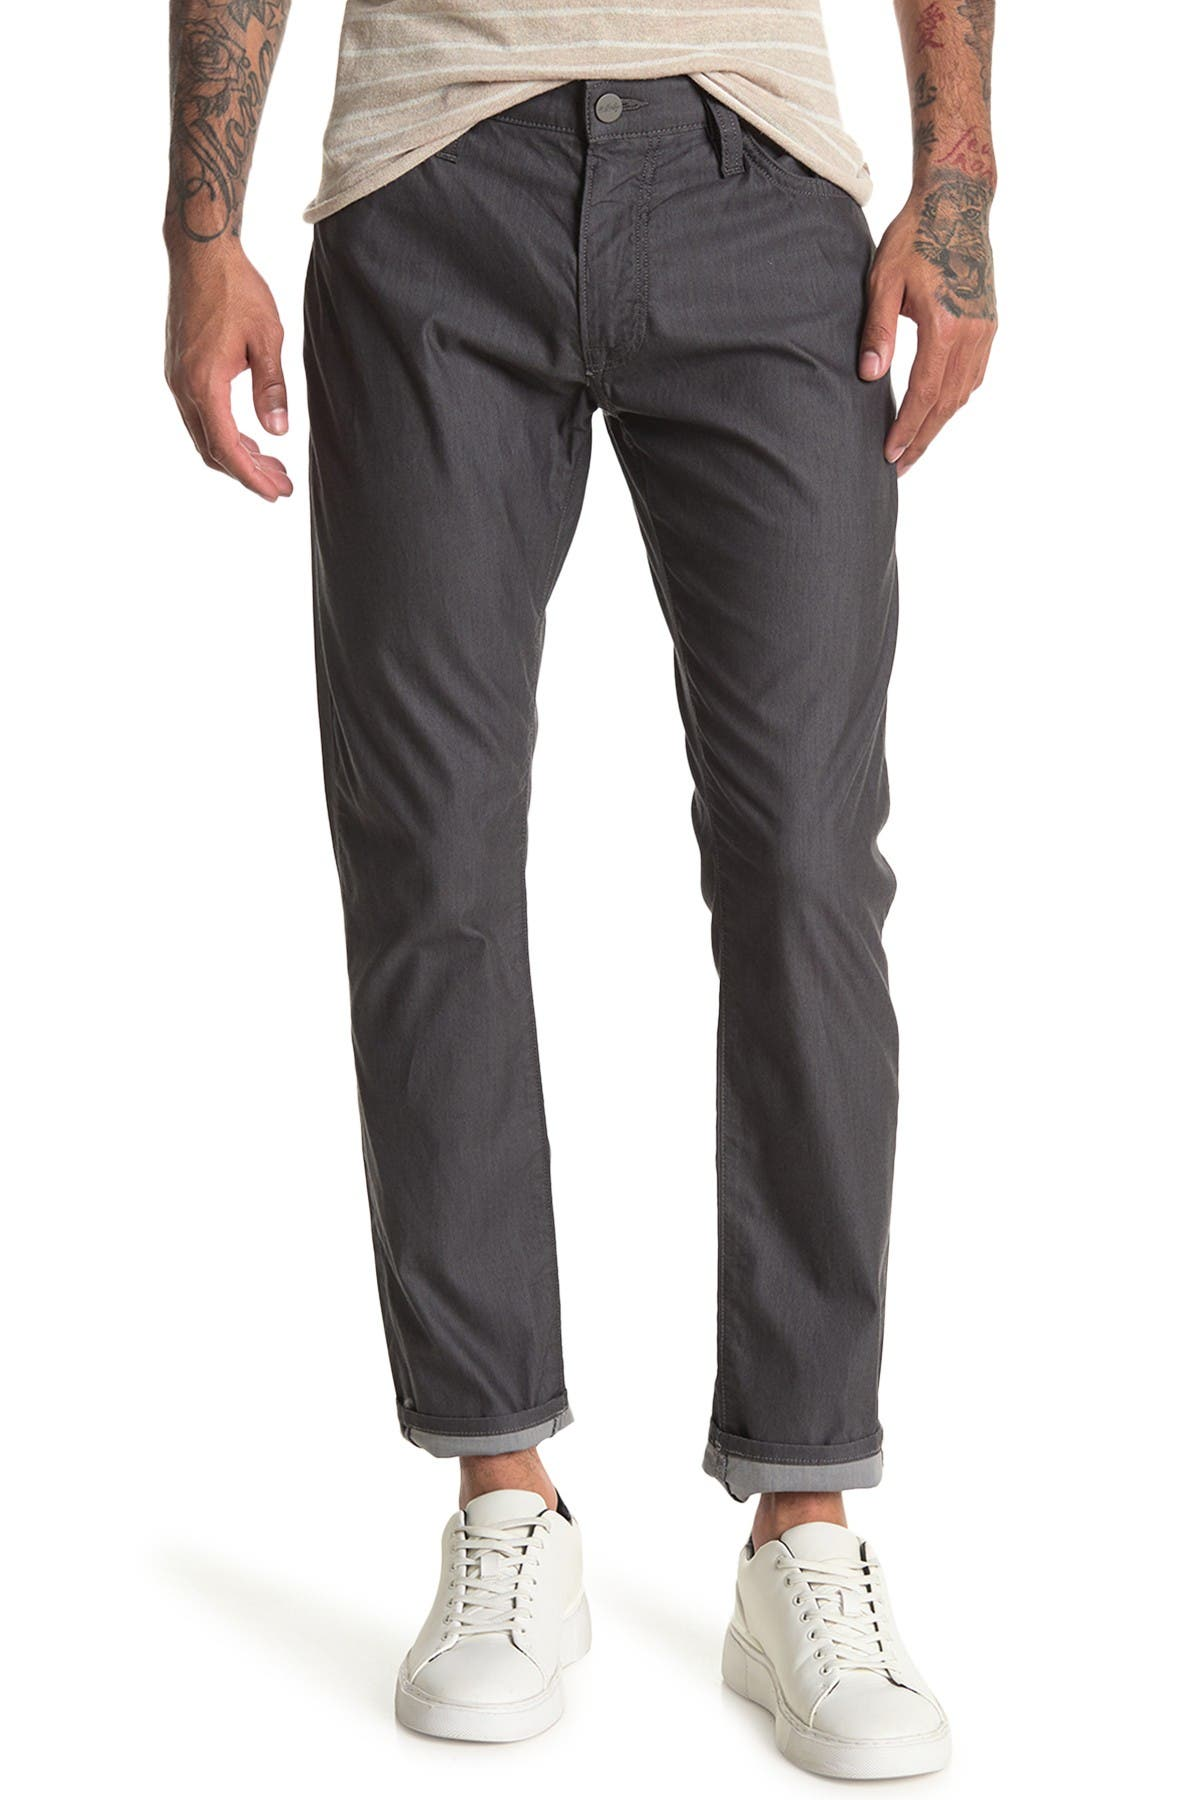 Image of 34 Heritage 34 Cool Anthracite Reversed Twill Pants